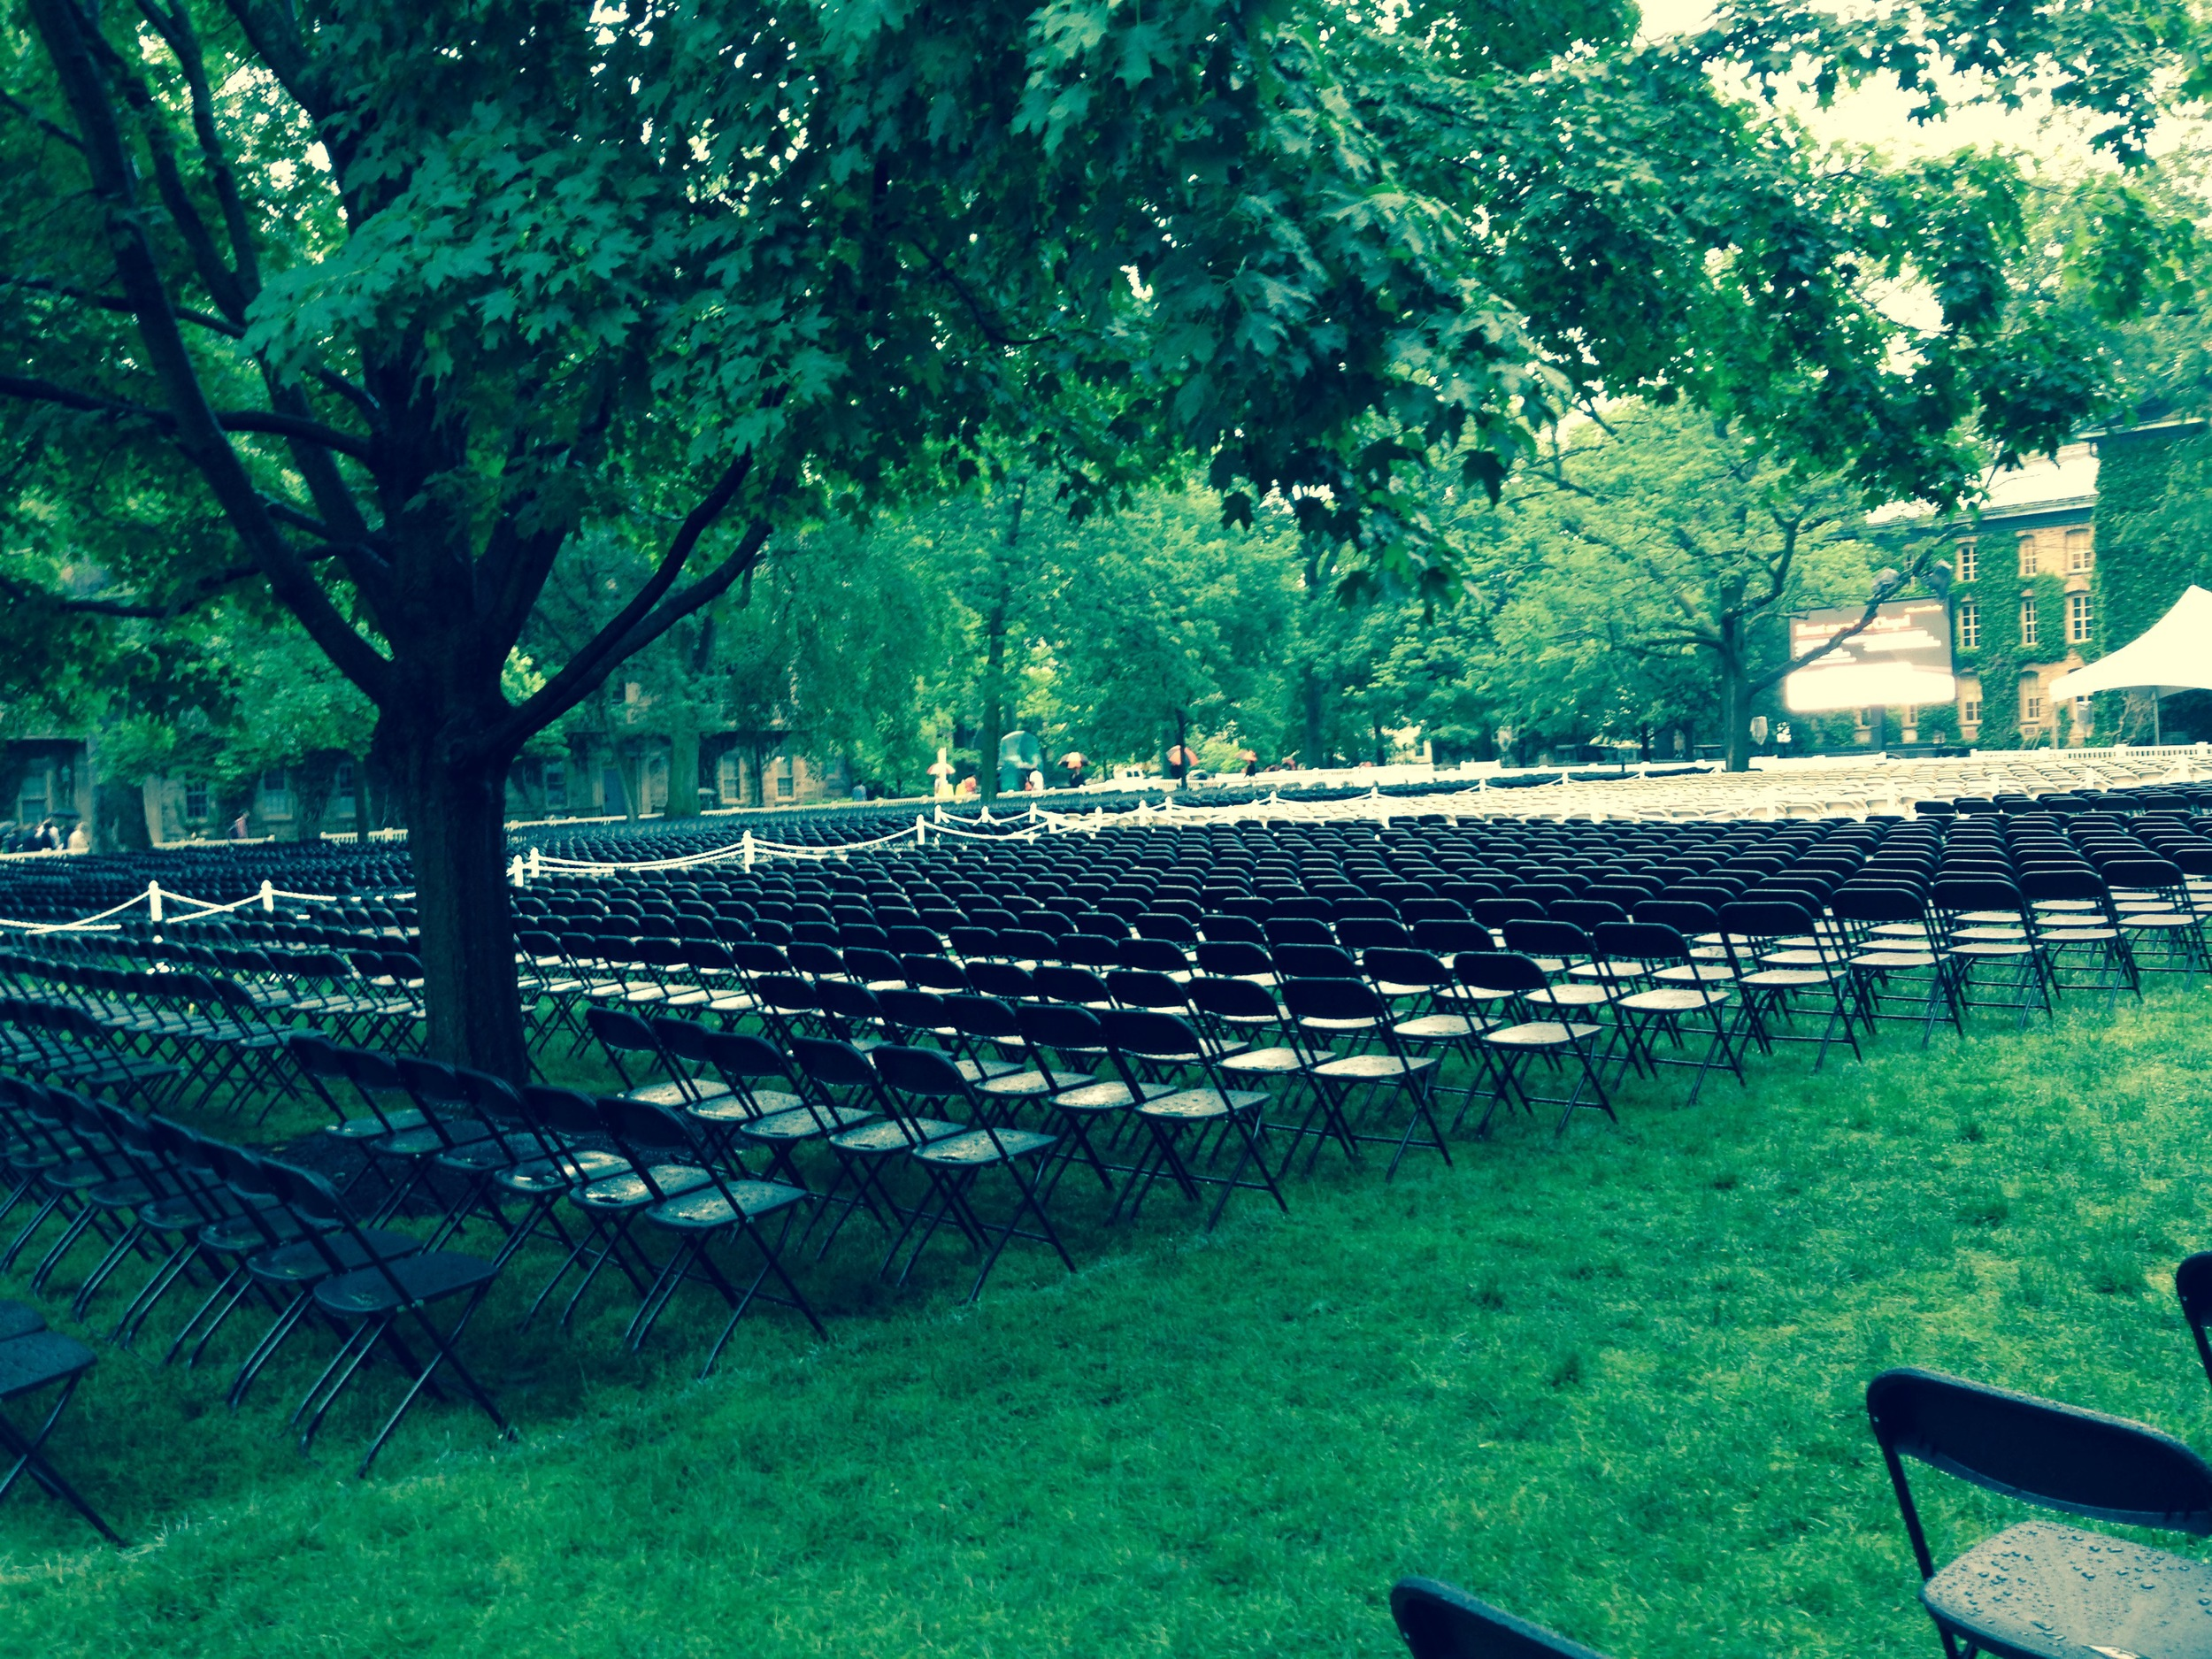 ready for commencement